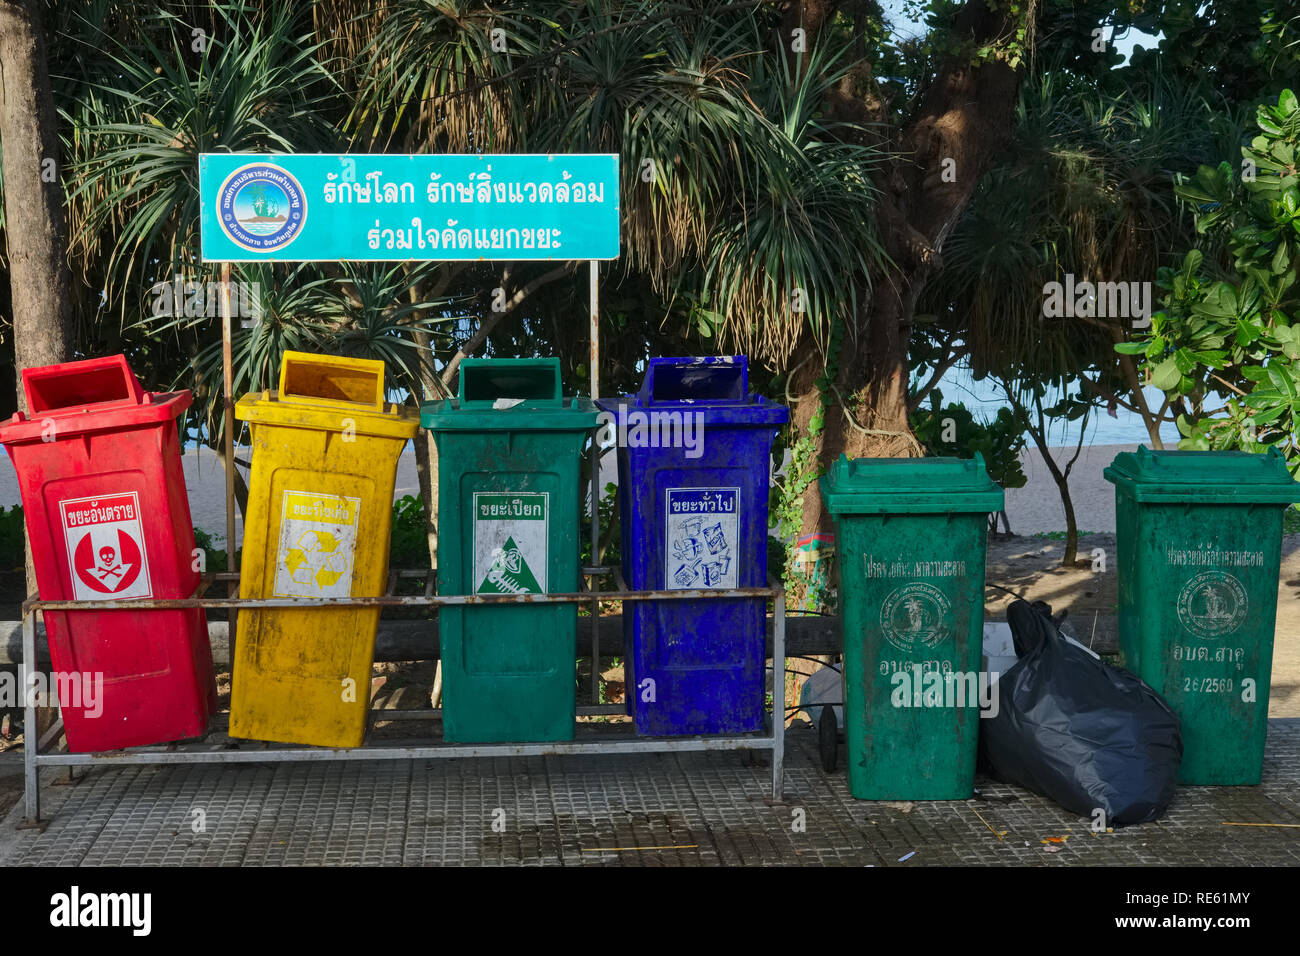 Trash cans at Nai Thon Beach, Phuket, Thailand, with different colors for different garbage, in an attempt to introduce trash separation - Stock Image